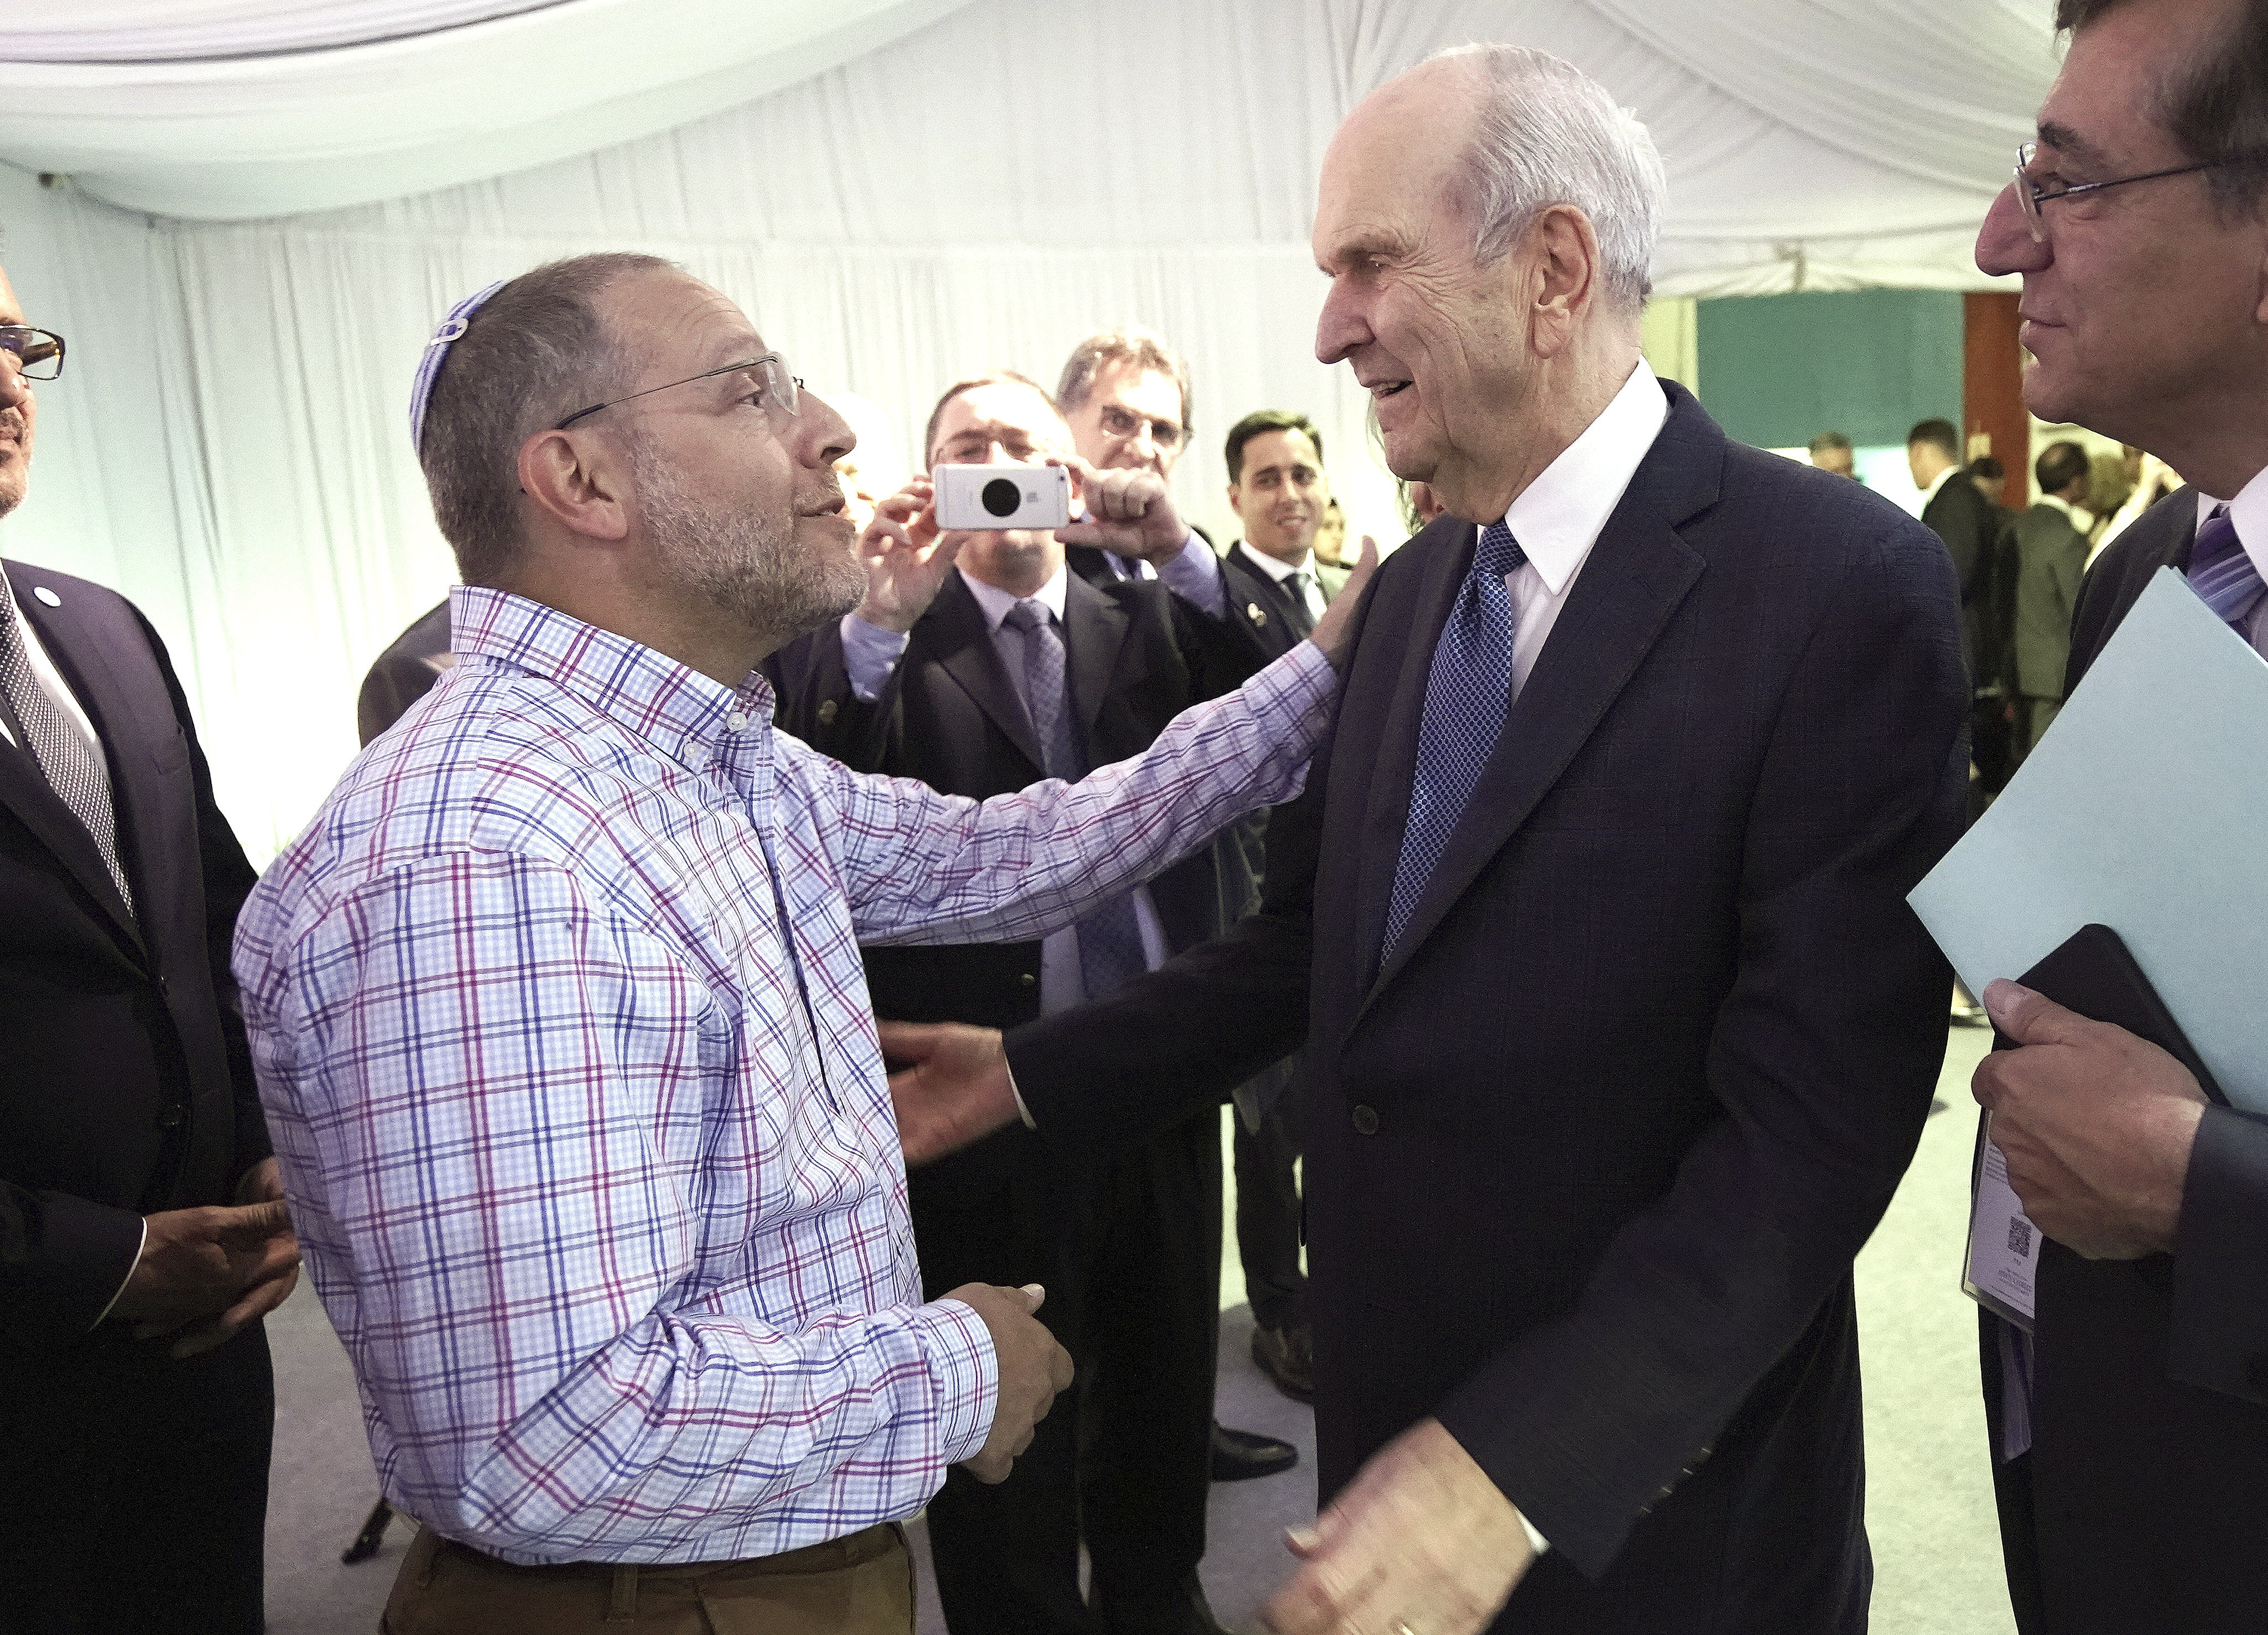 President Russell M. Nelson of The Church of Jesus Christ of Latter-day Saints talks with Rabbi Jacob Blumenthal prior to a devotional in Buenos Aires, Argentina, on Wednesday, Aug. 28, 2019.